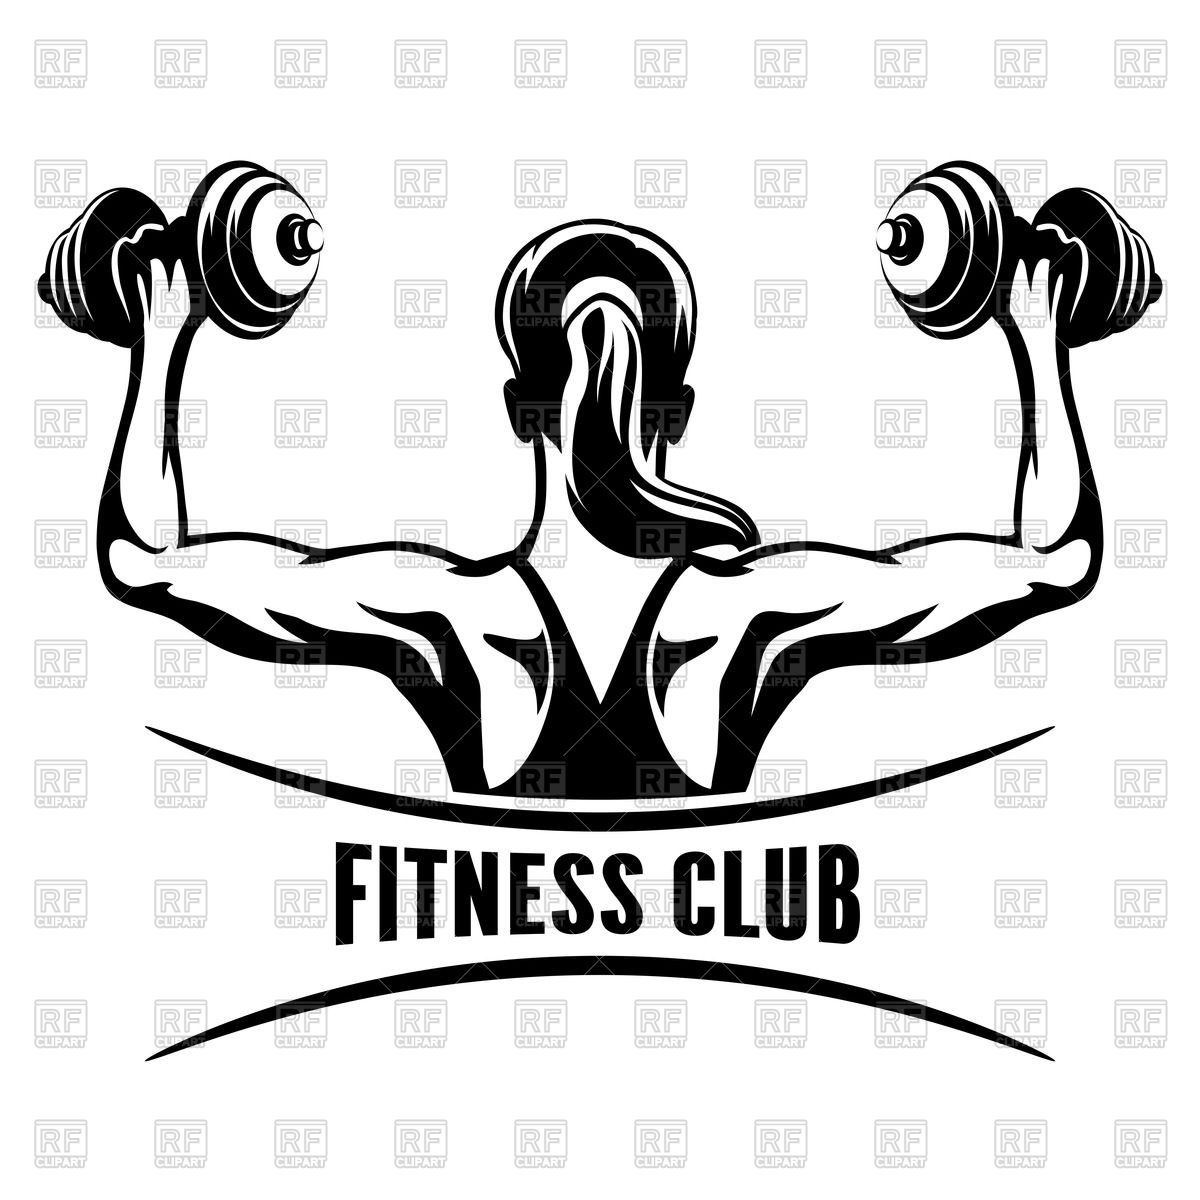 Gym Clipart Black And White & Free Clip Art Images #10574.